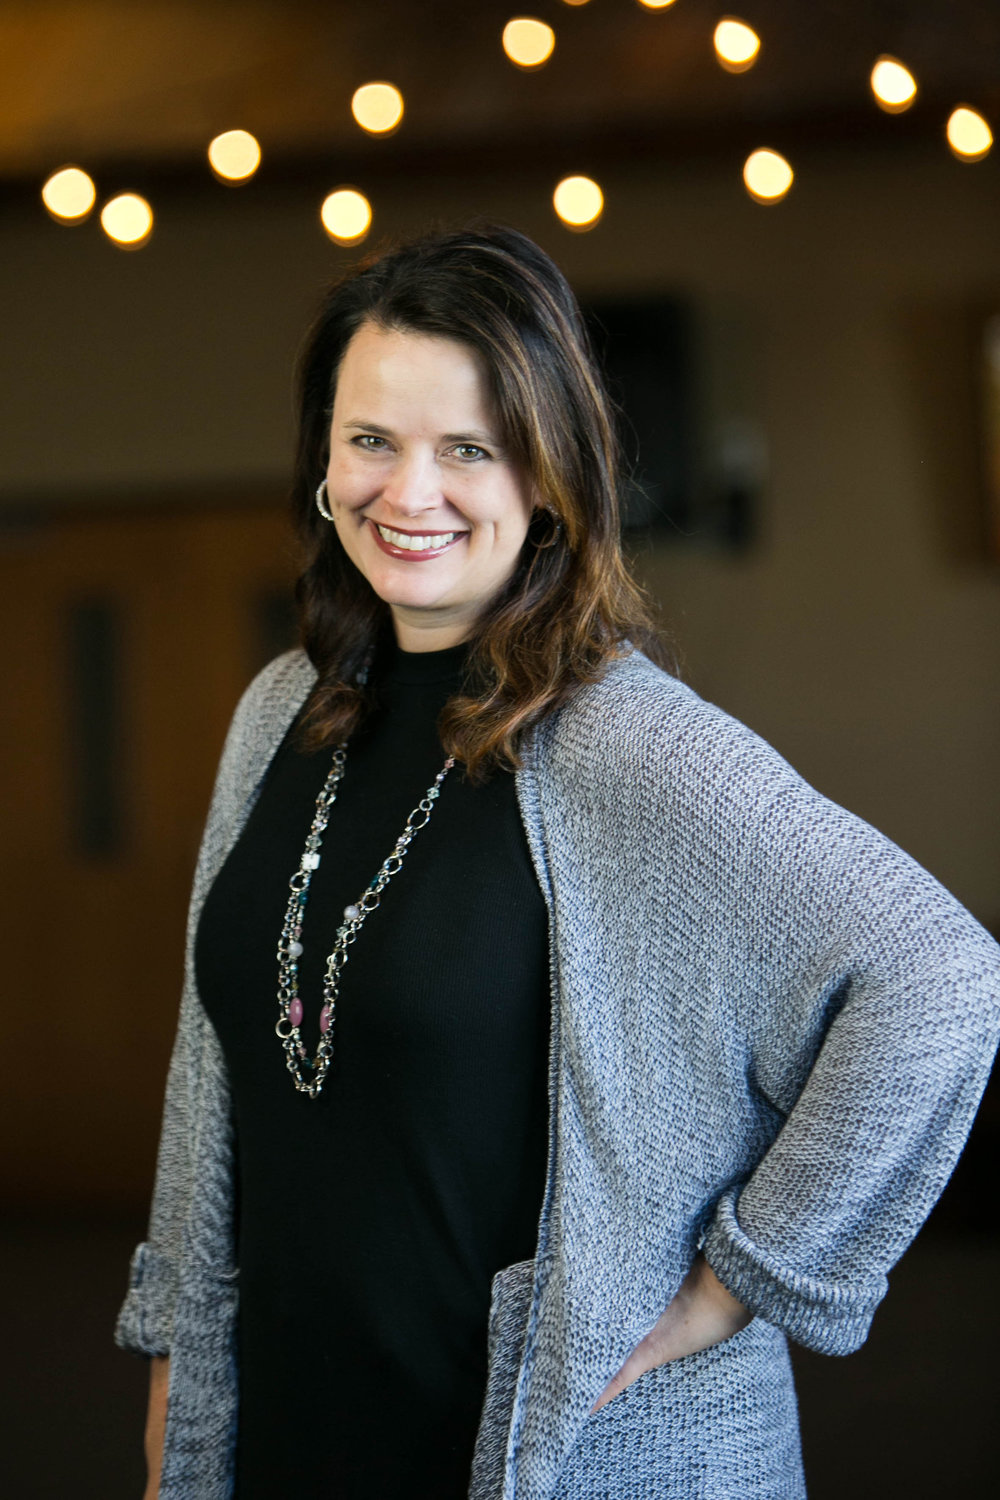 Kimberly Clem Community Care Director